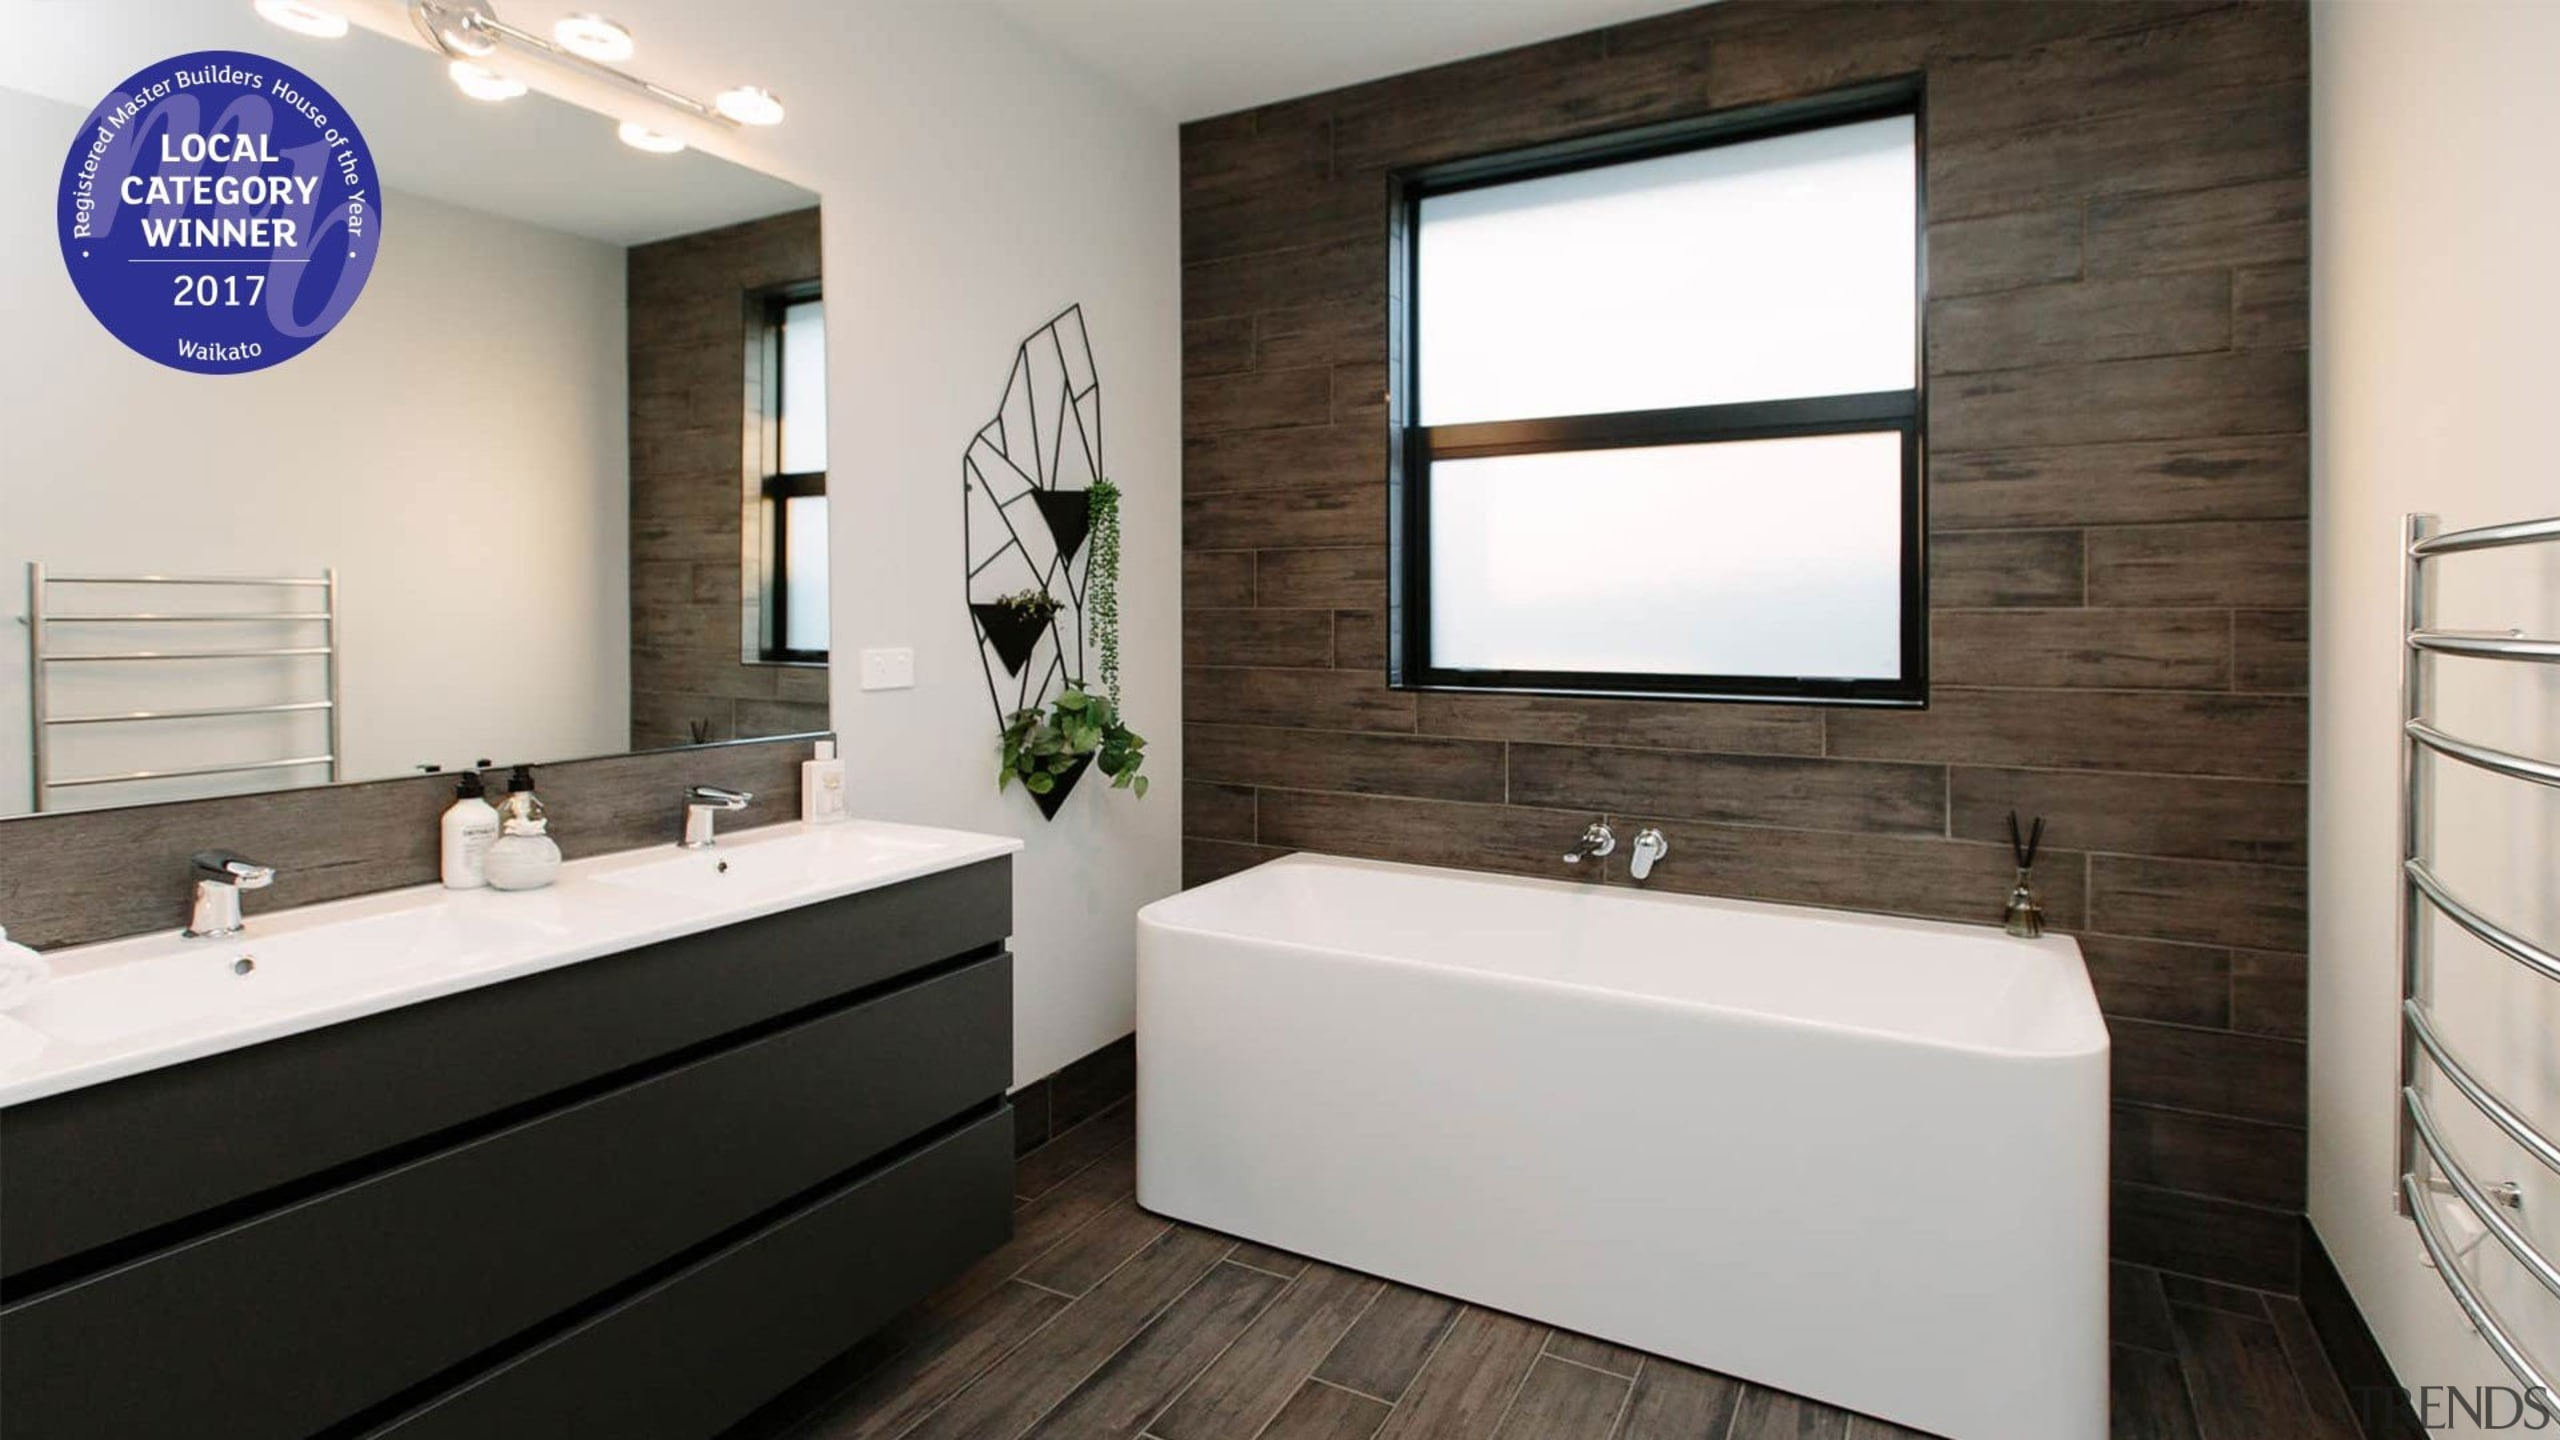 Beautifully tiled bathroom with a touch of greenery bathroom, home, interior design, room, white, black